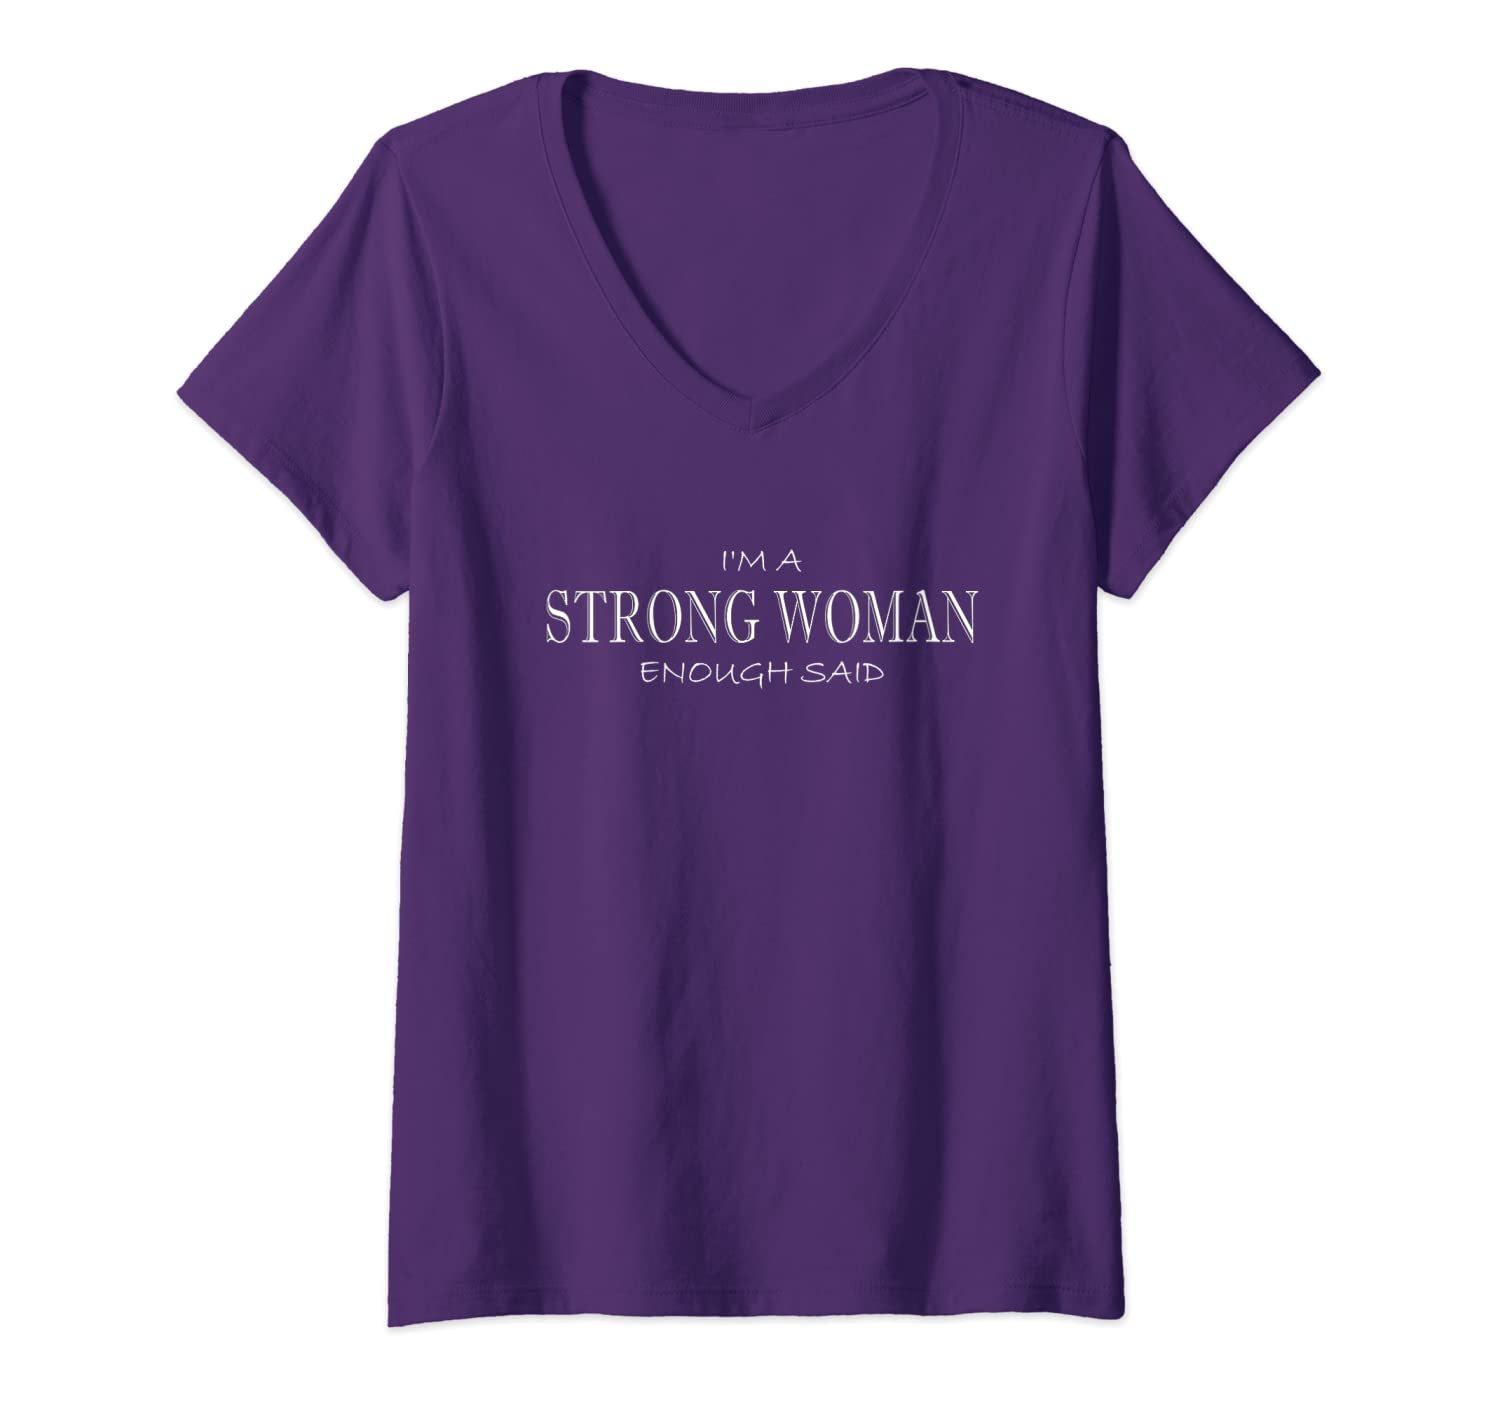 STRONG WOMAN Enough Said anti sexism oppression V-neck